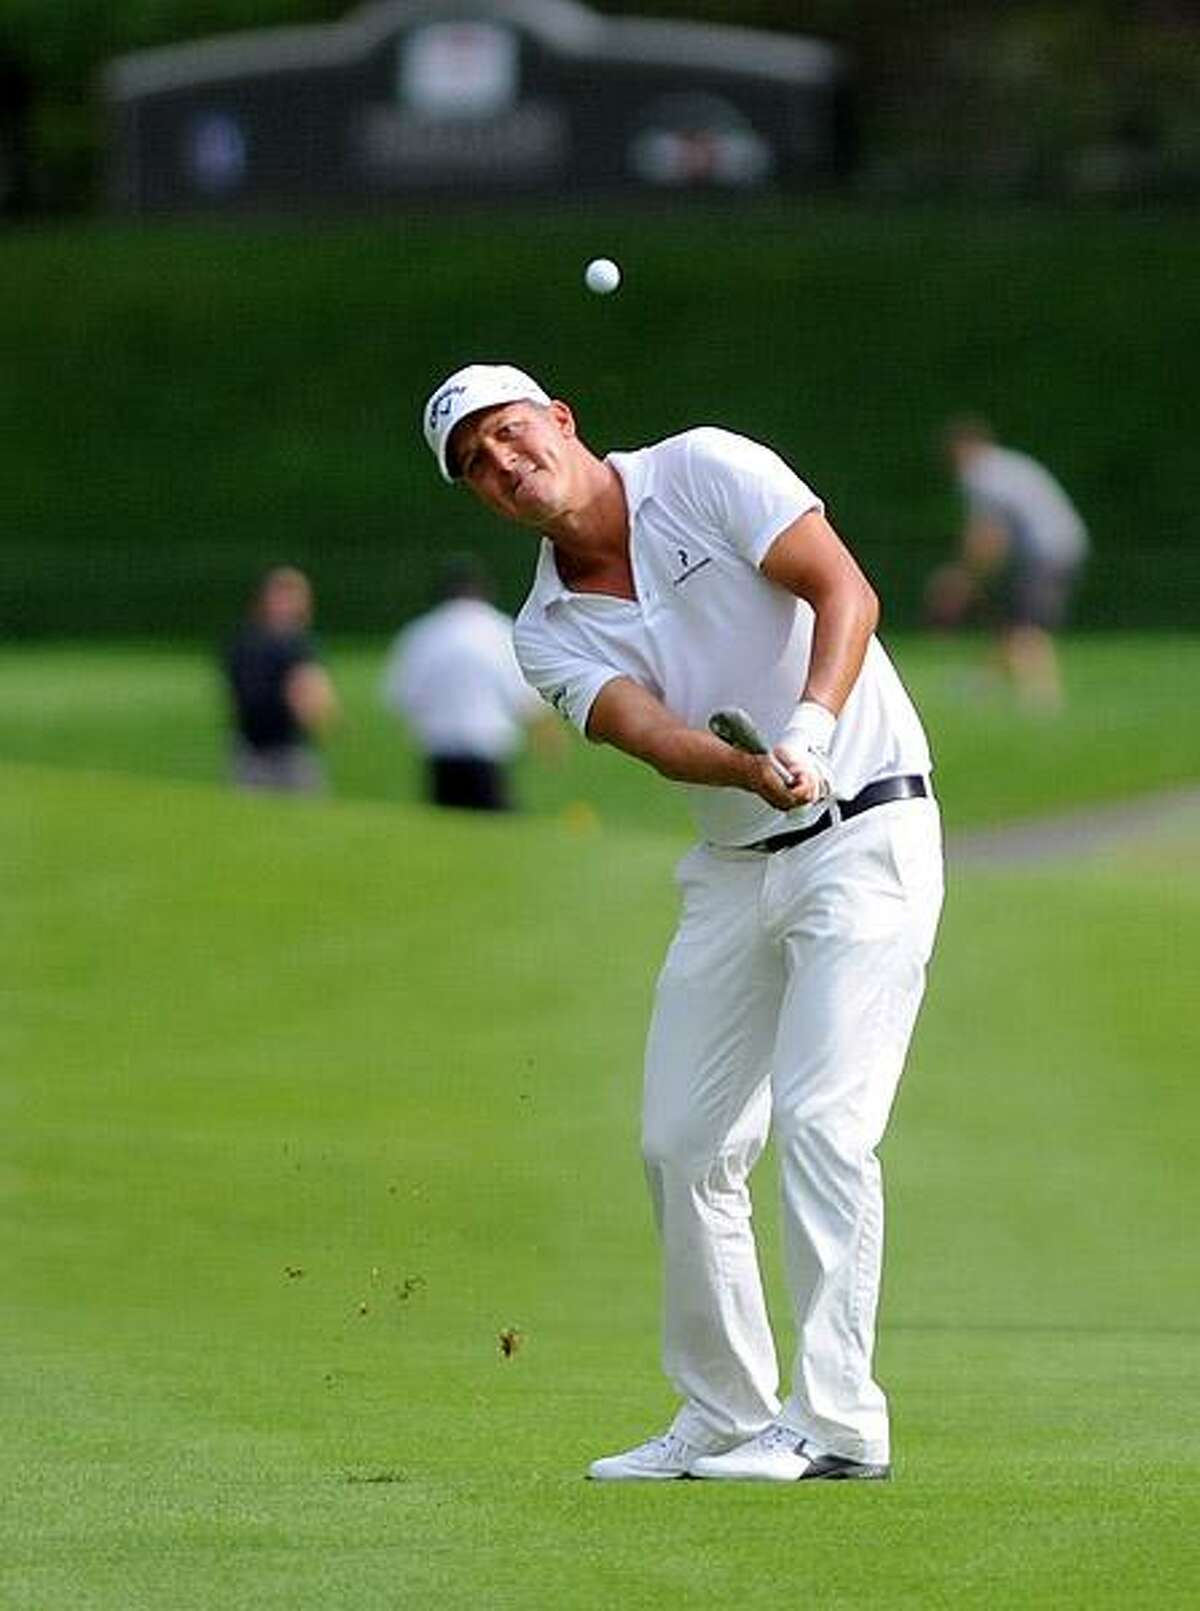 Cromwell--Fredrik Jacobson chips towards the 15th green. Photo-Peter Casolino/New Haven RegisterCas110626 6/26/11